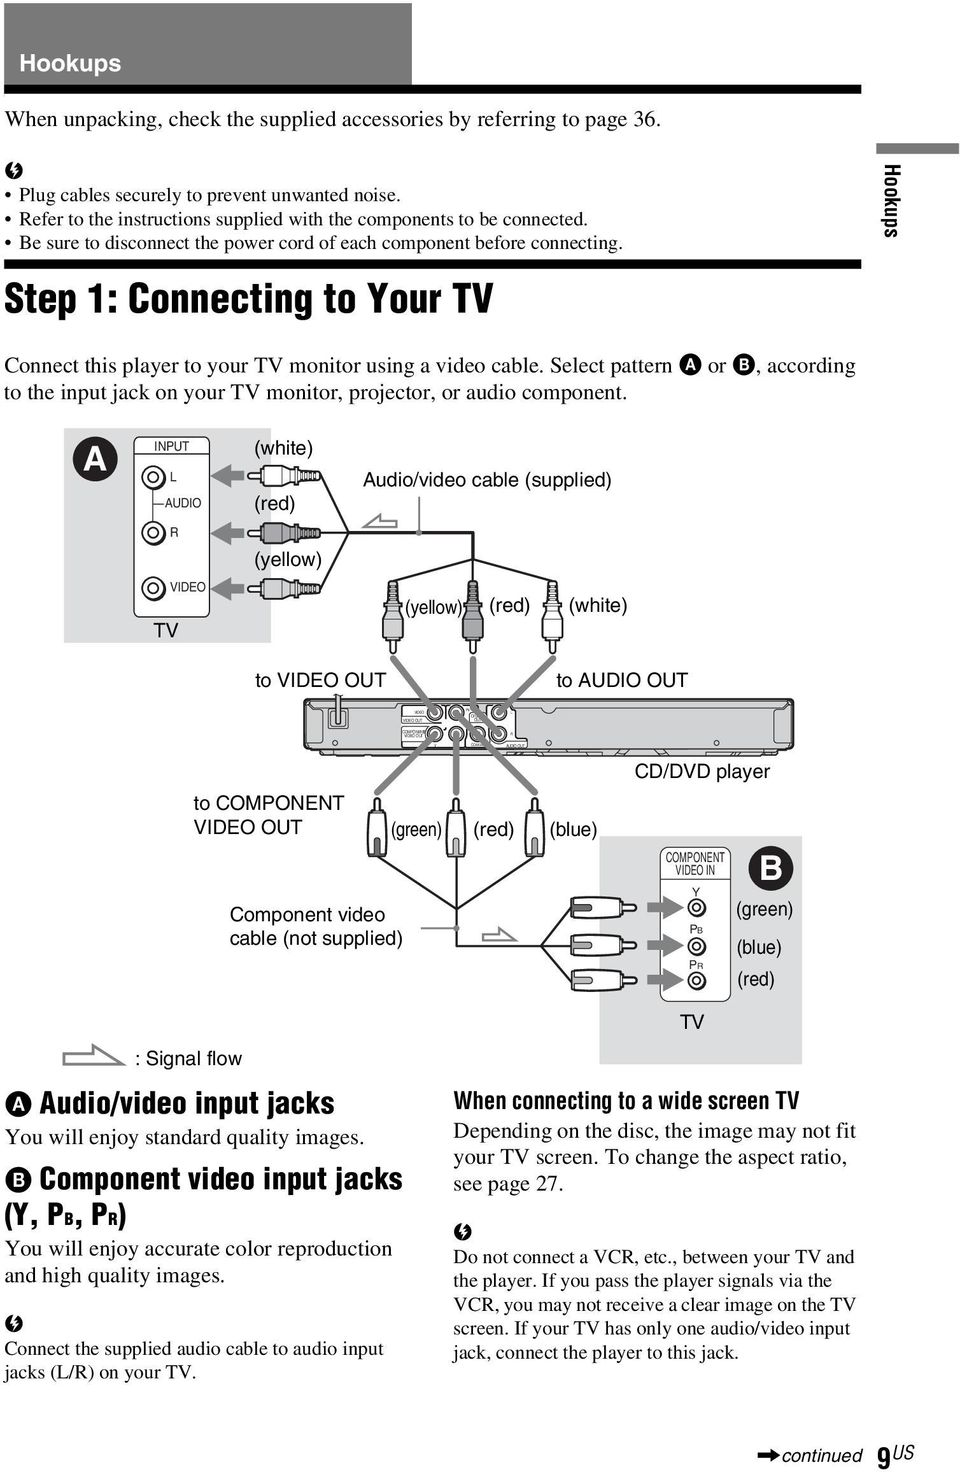 Step 1: Connecting to Your TV Hookups Connect this player to your TV monitor using a video cale. Select pattern A or B, according to the input jack on your TV monitor, projector, or audio component.